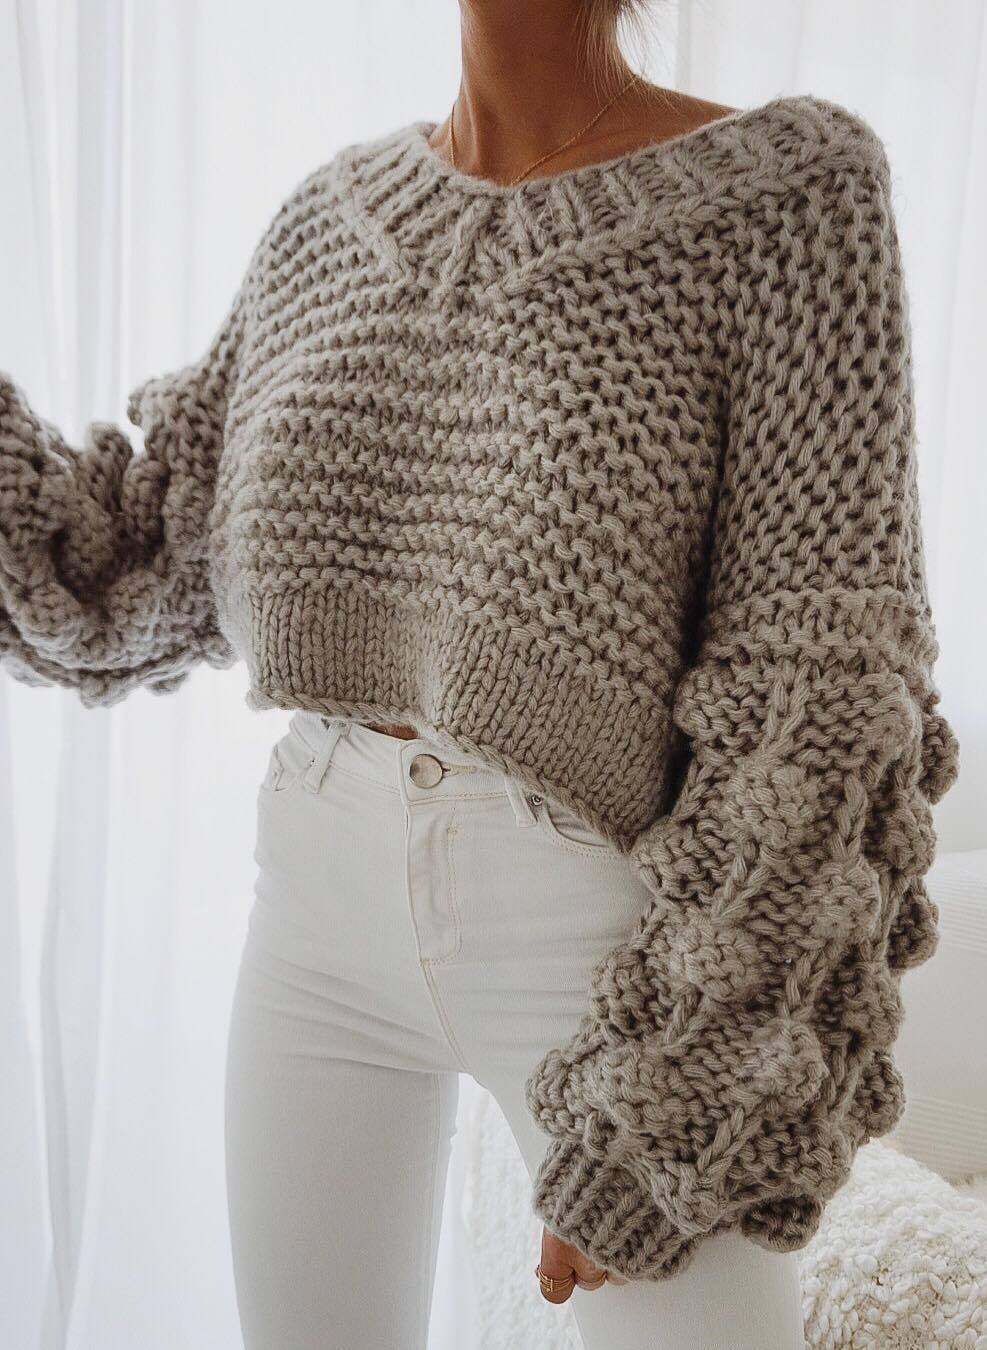 simple fall outfit idea / knit sweater and white pants